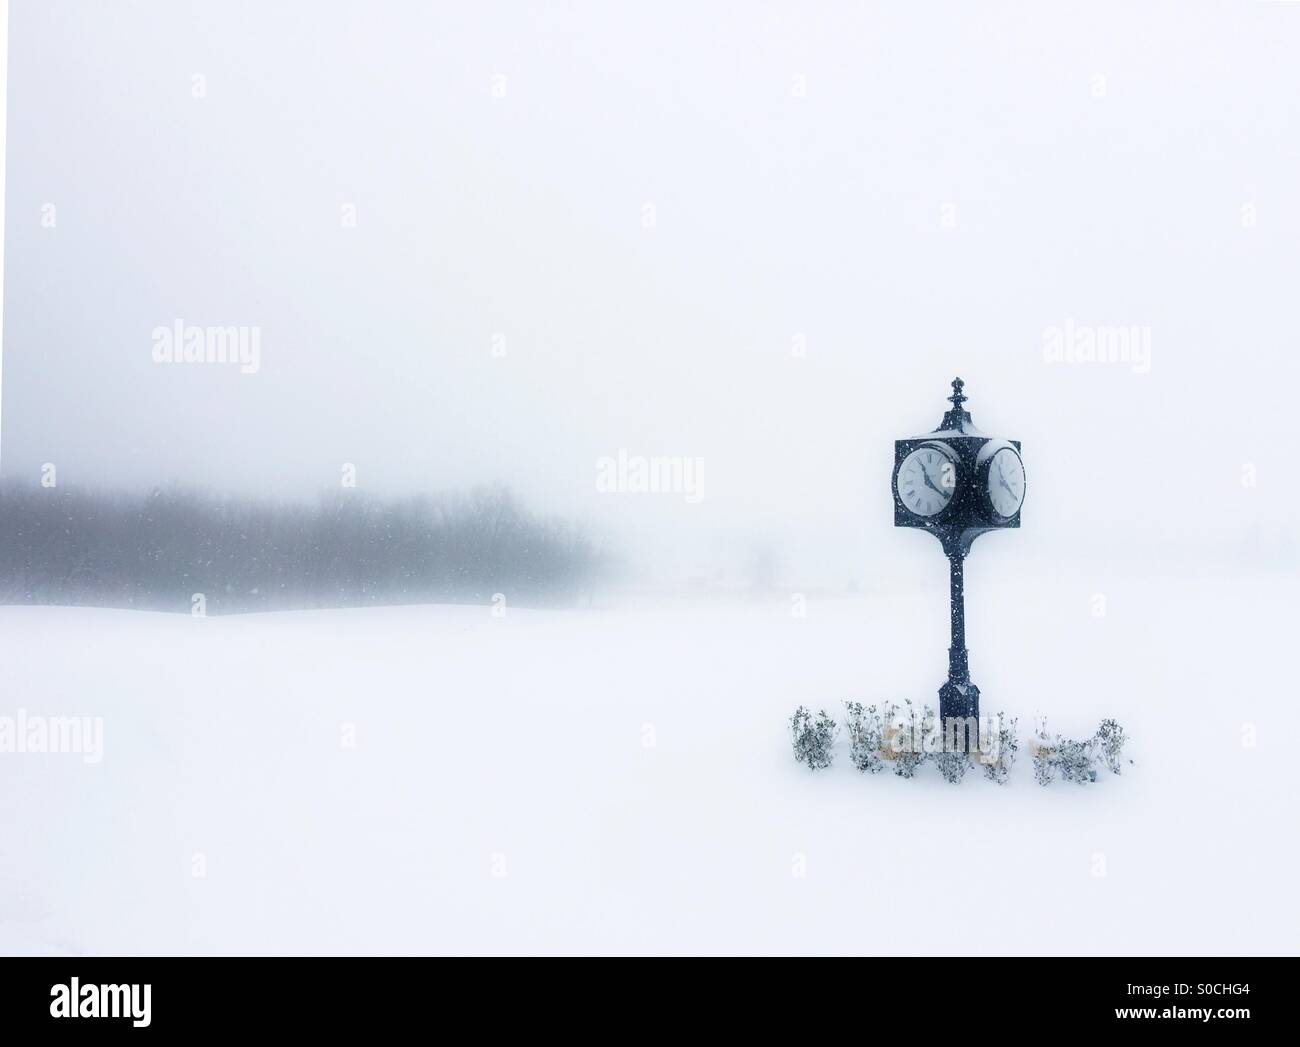 Snow on the driving range. - Stock Image